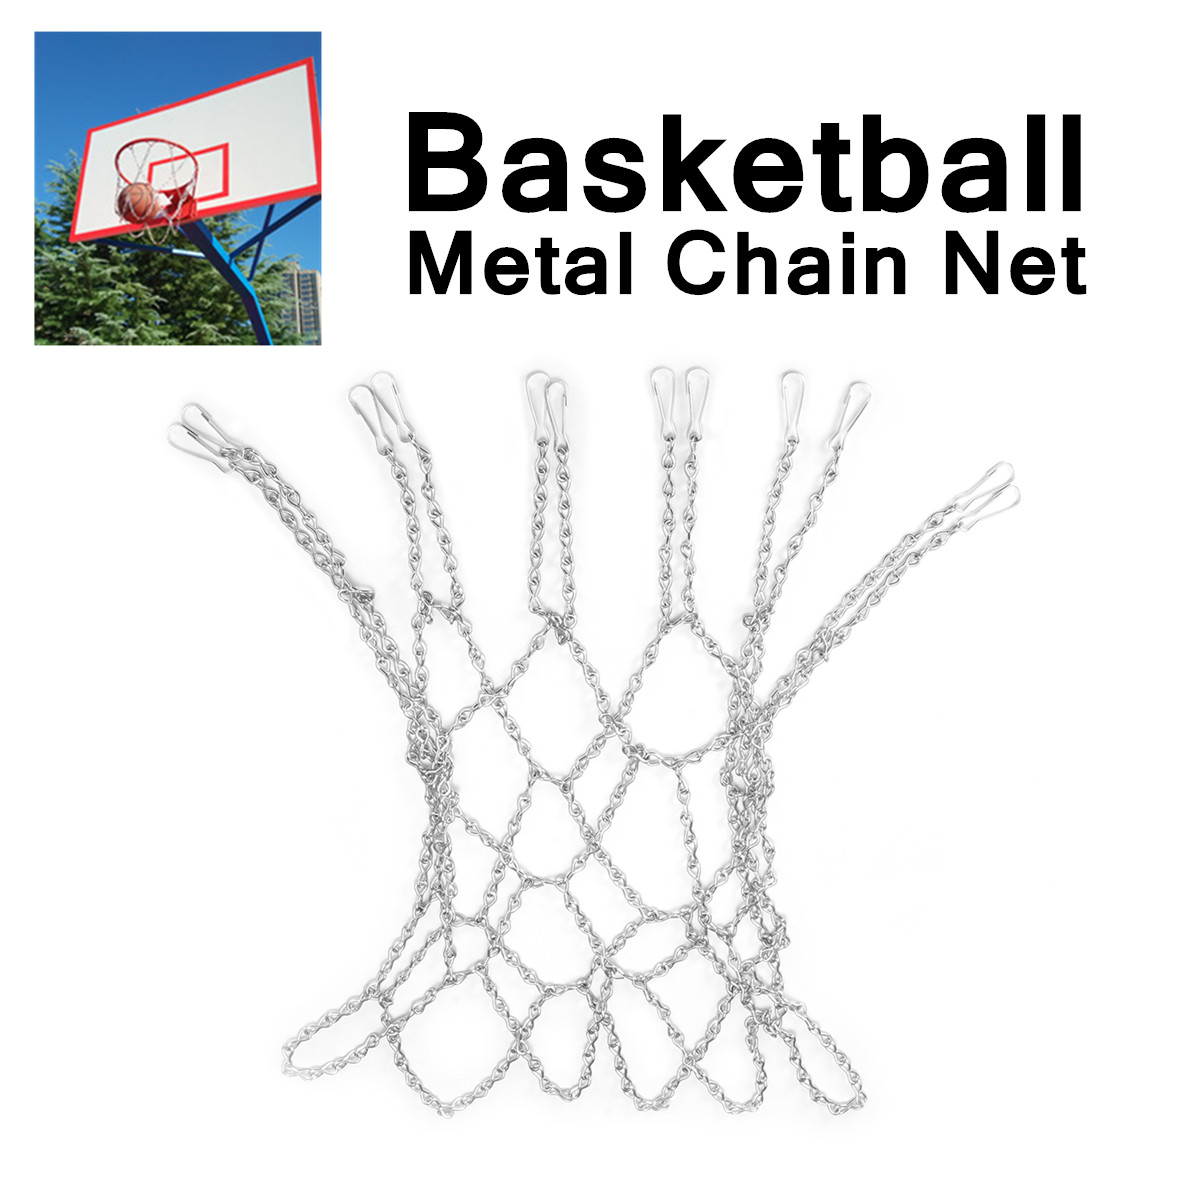 12 Loops Basketball Metal Chain Net Zinc Steel Silver Rust-Proof Design Standard Fit For Hoops Easy Attachment Heavy-